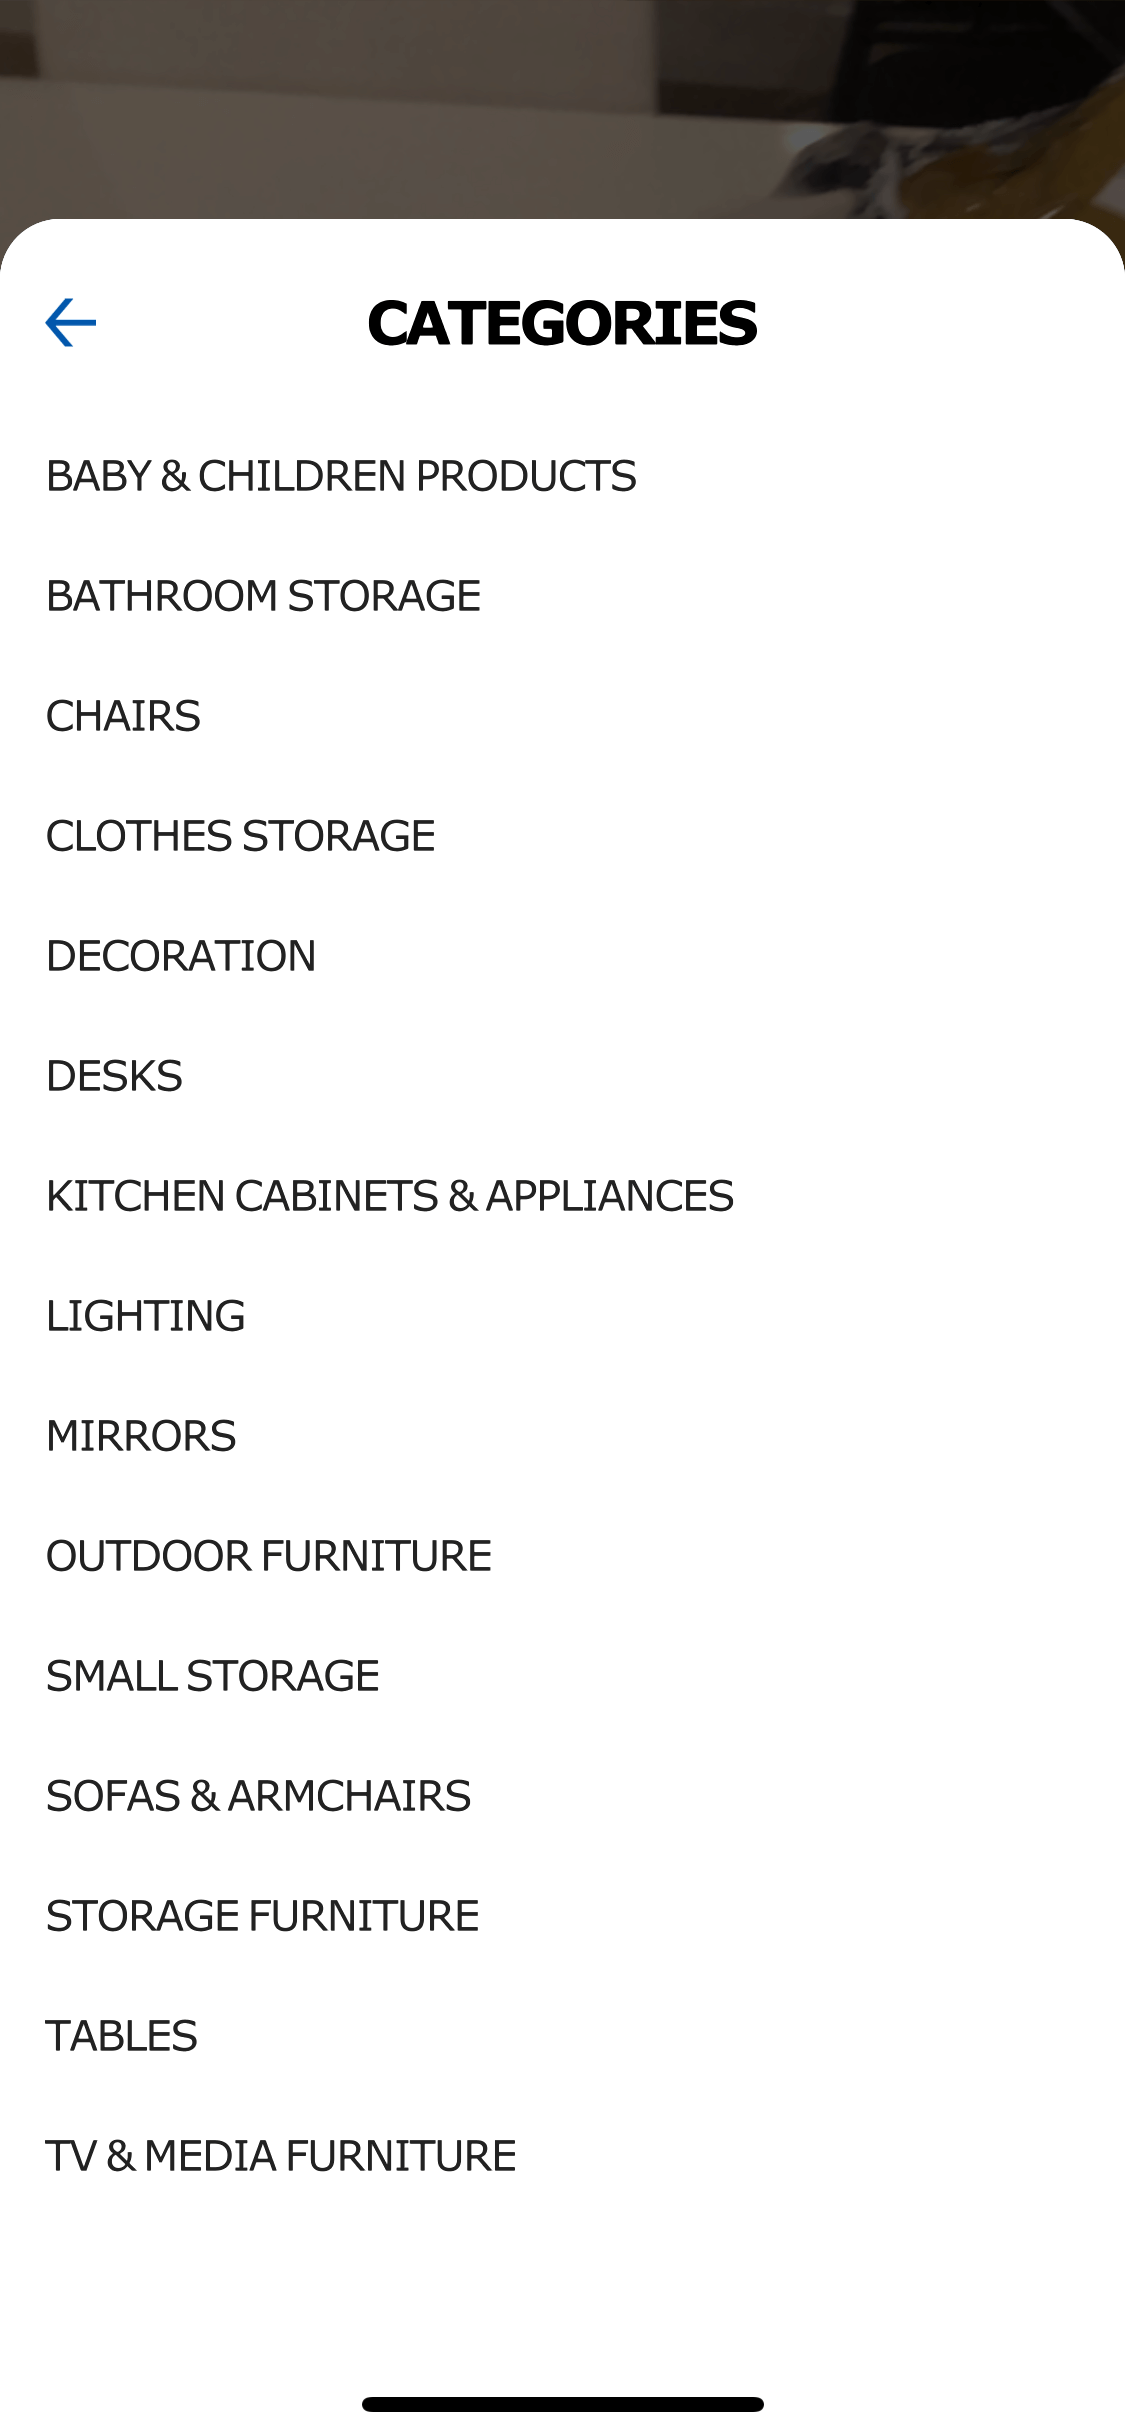 Categories list by Ikea Place